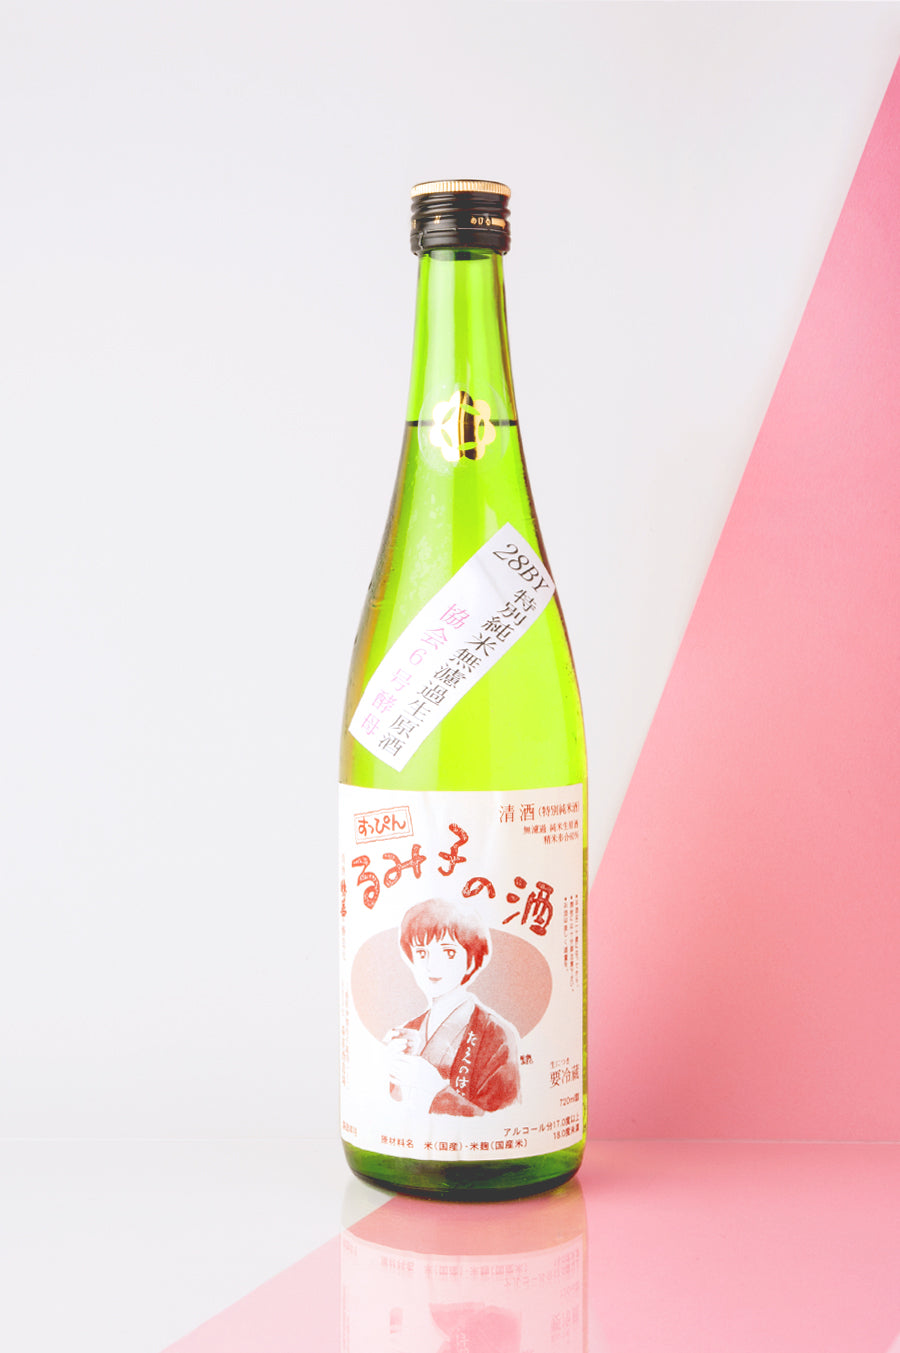 Moriki Suppin Rumiko no Sake 2019